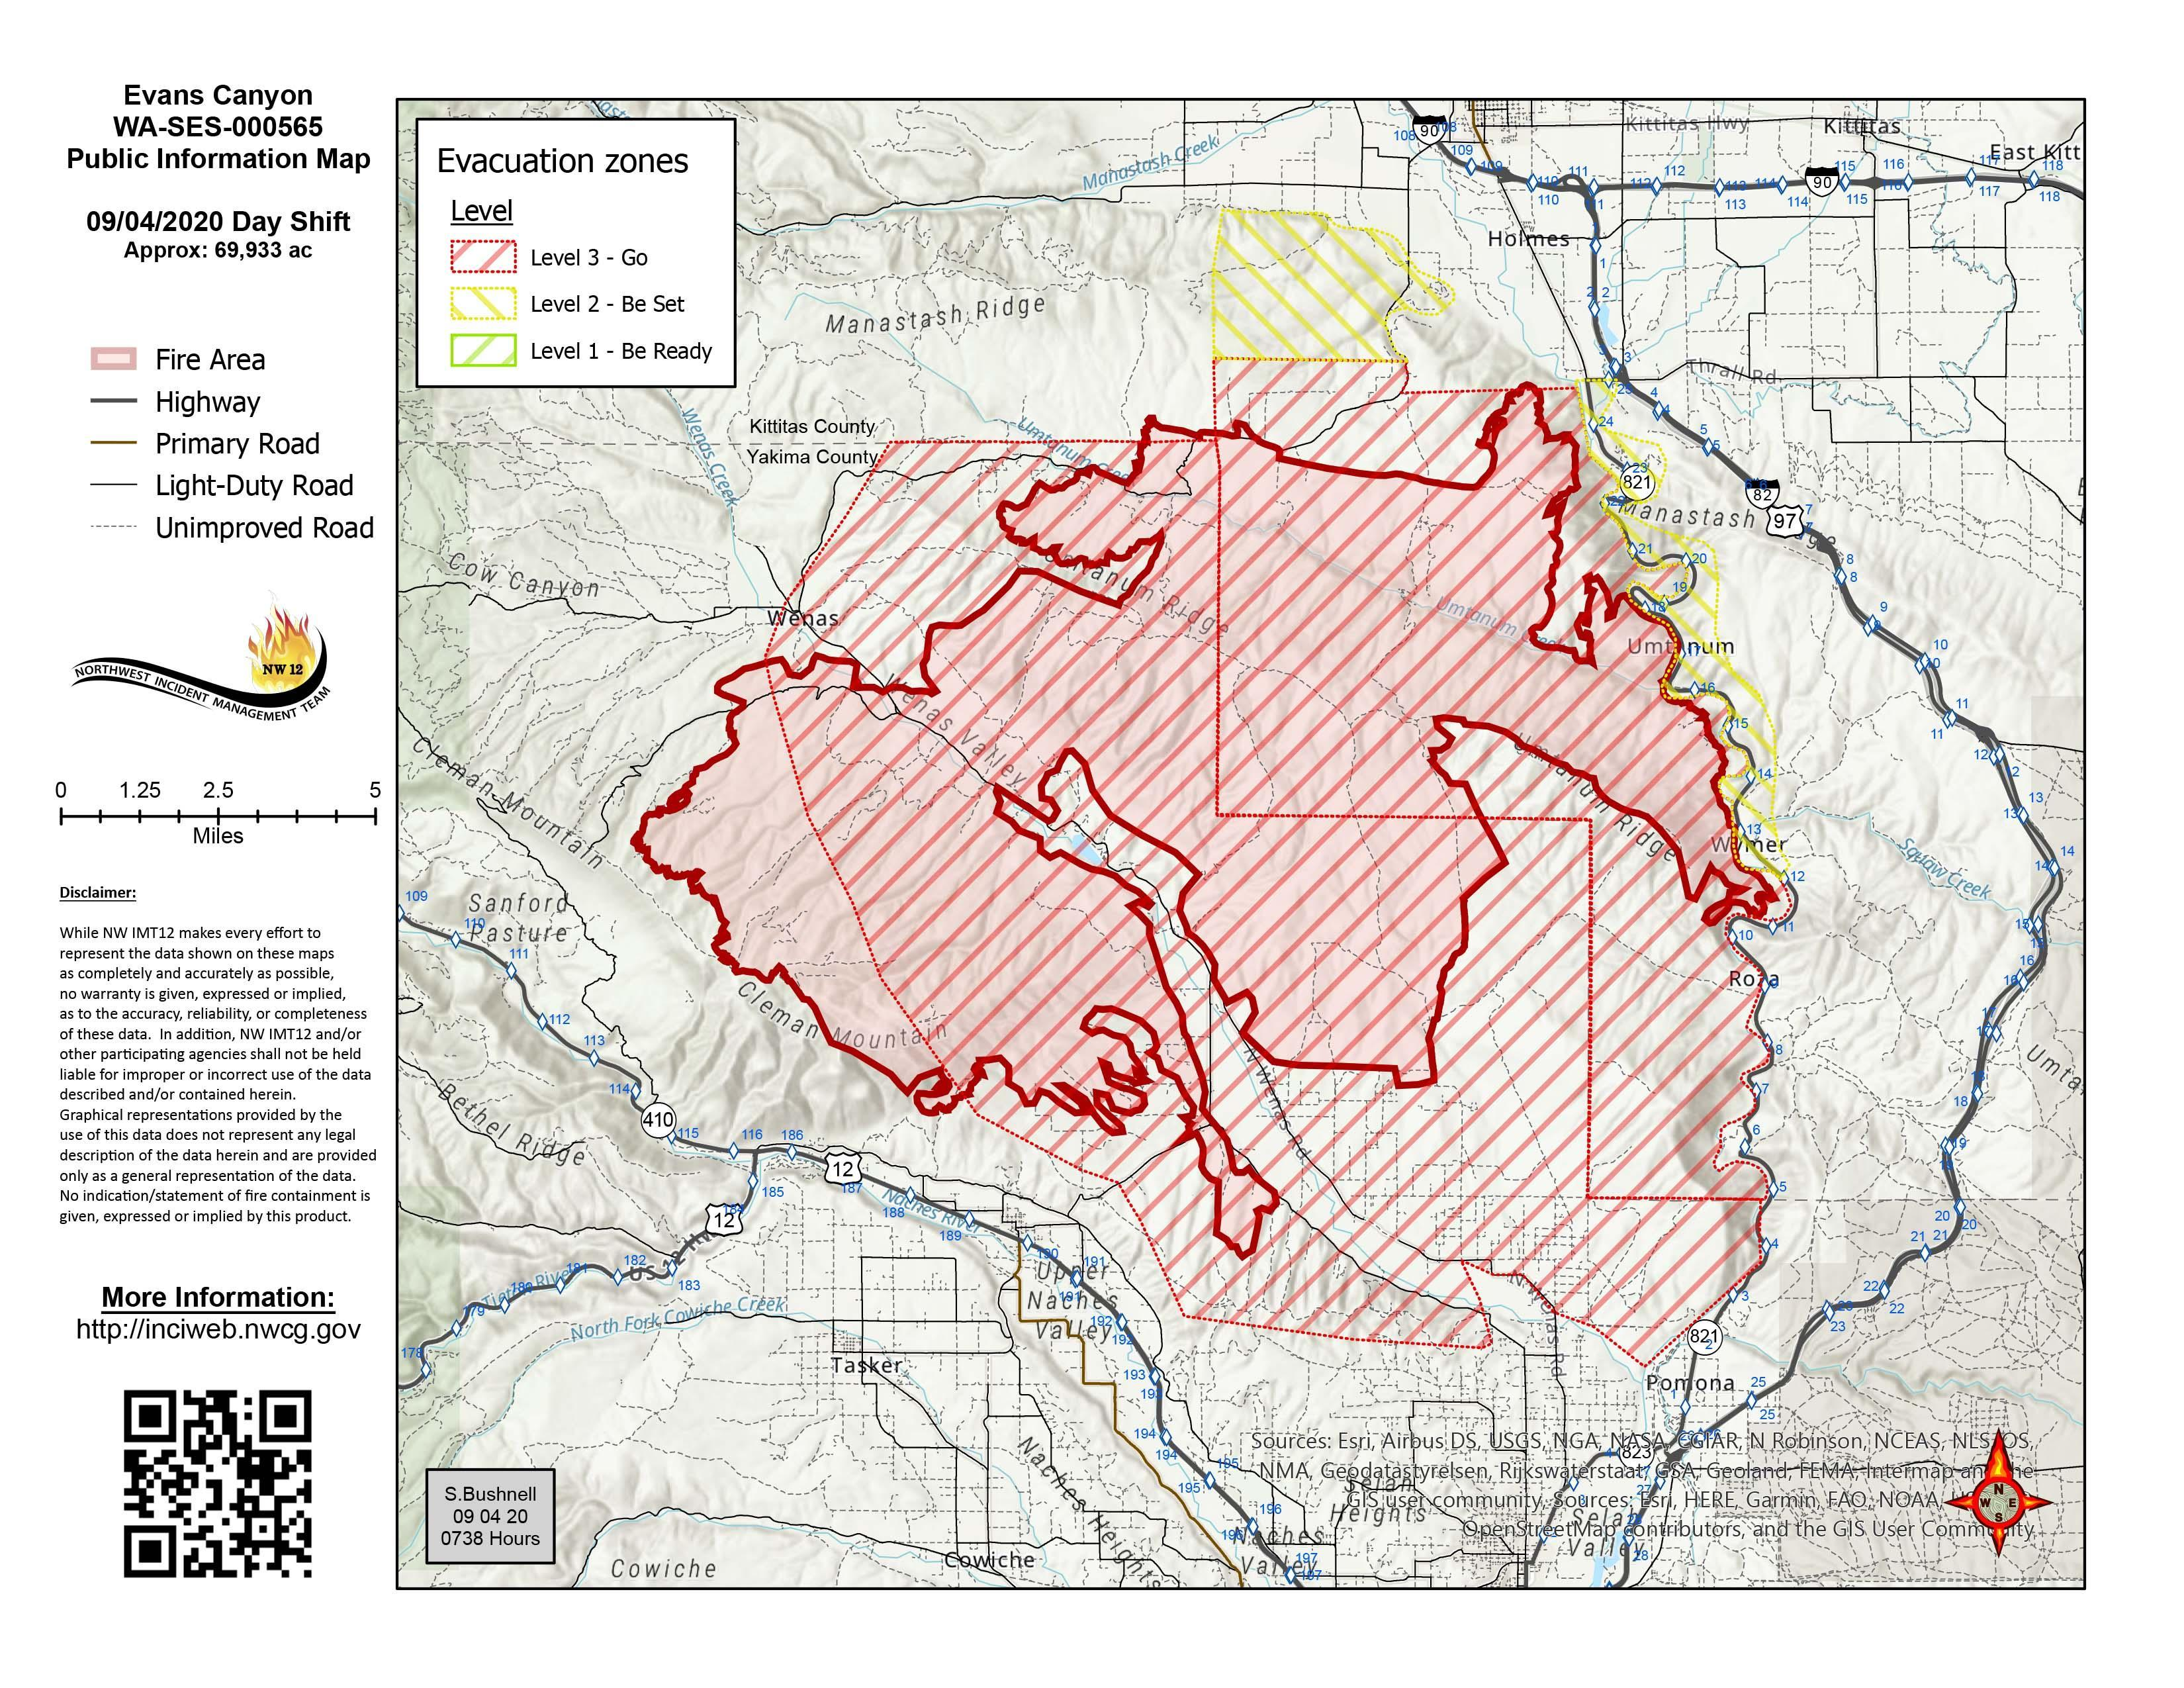 Evans Canyon Fire Map - September 4